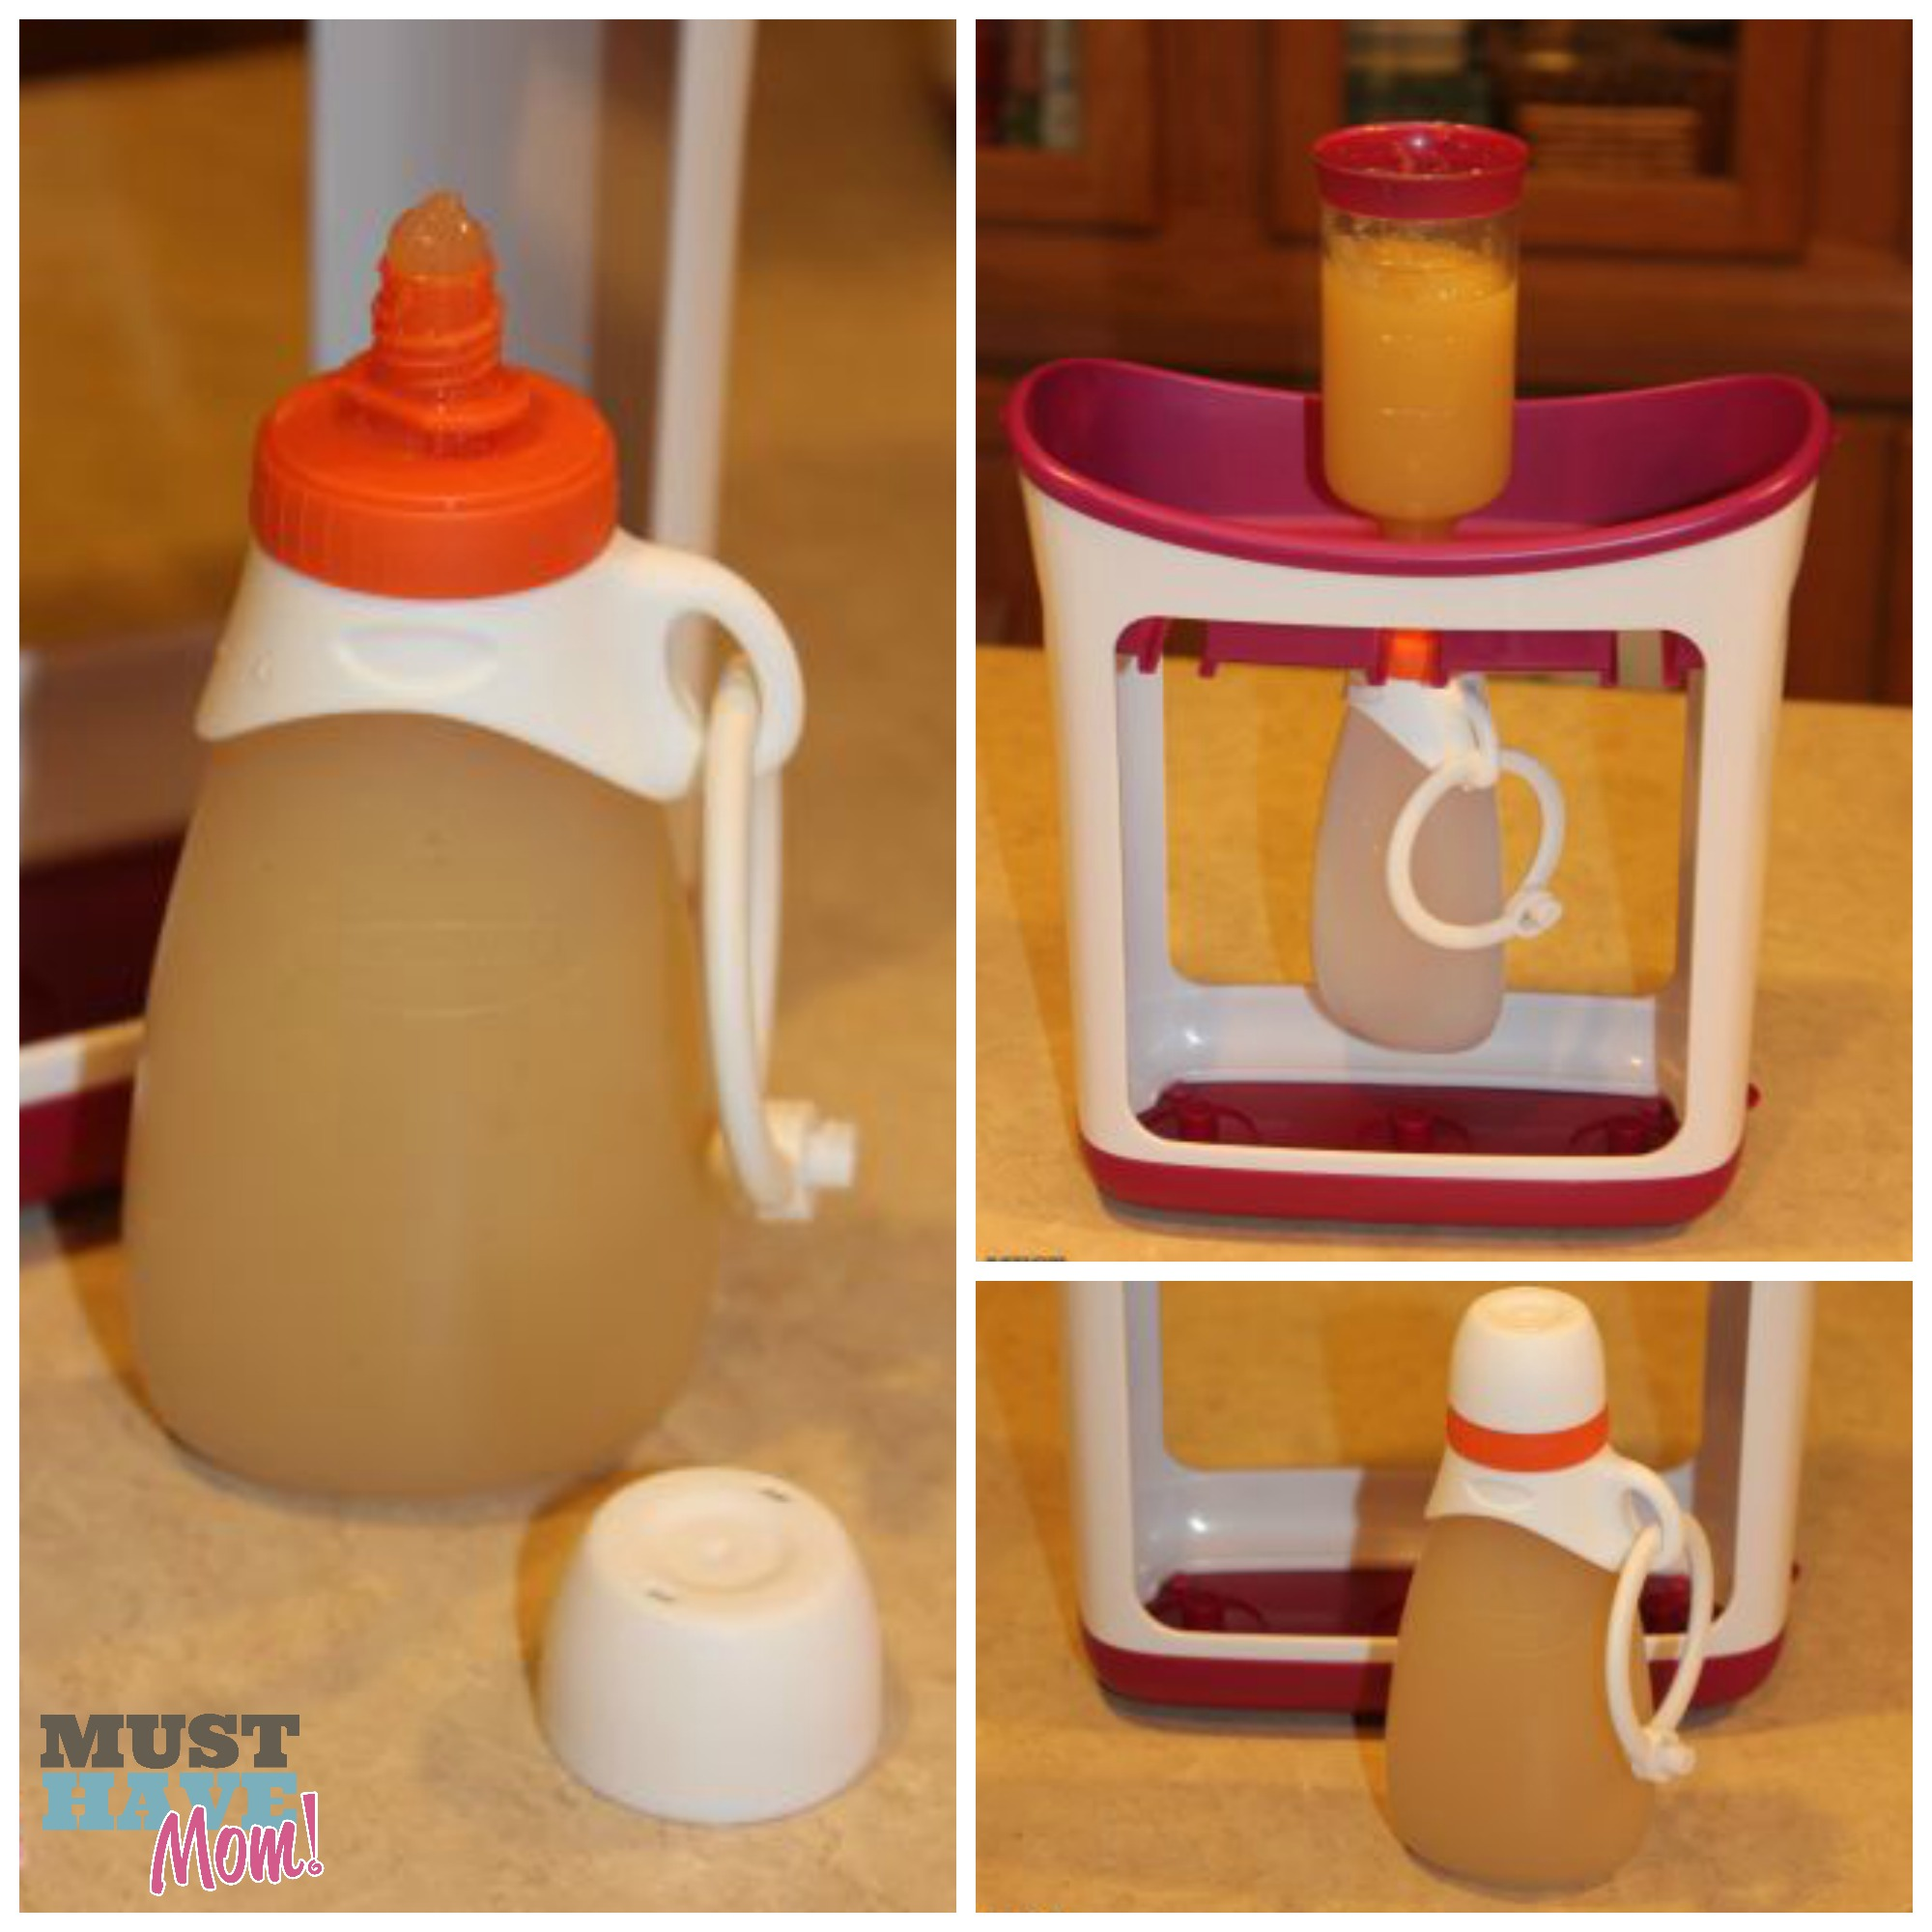 Infantino Fresh Squeezed Baby System Lets You Make Your